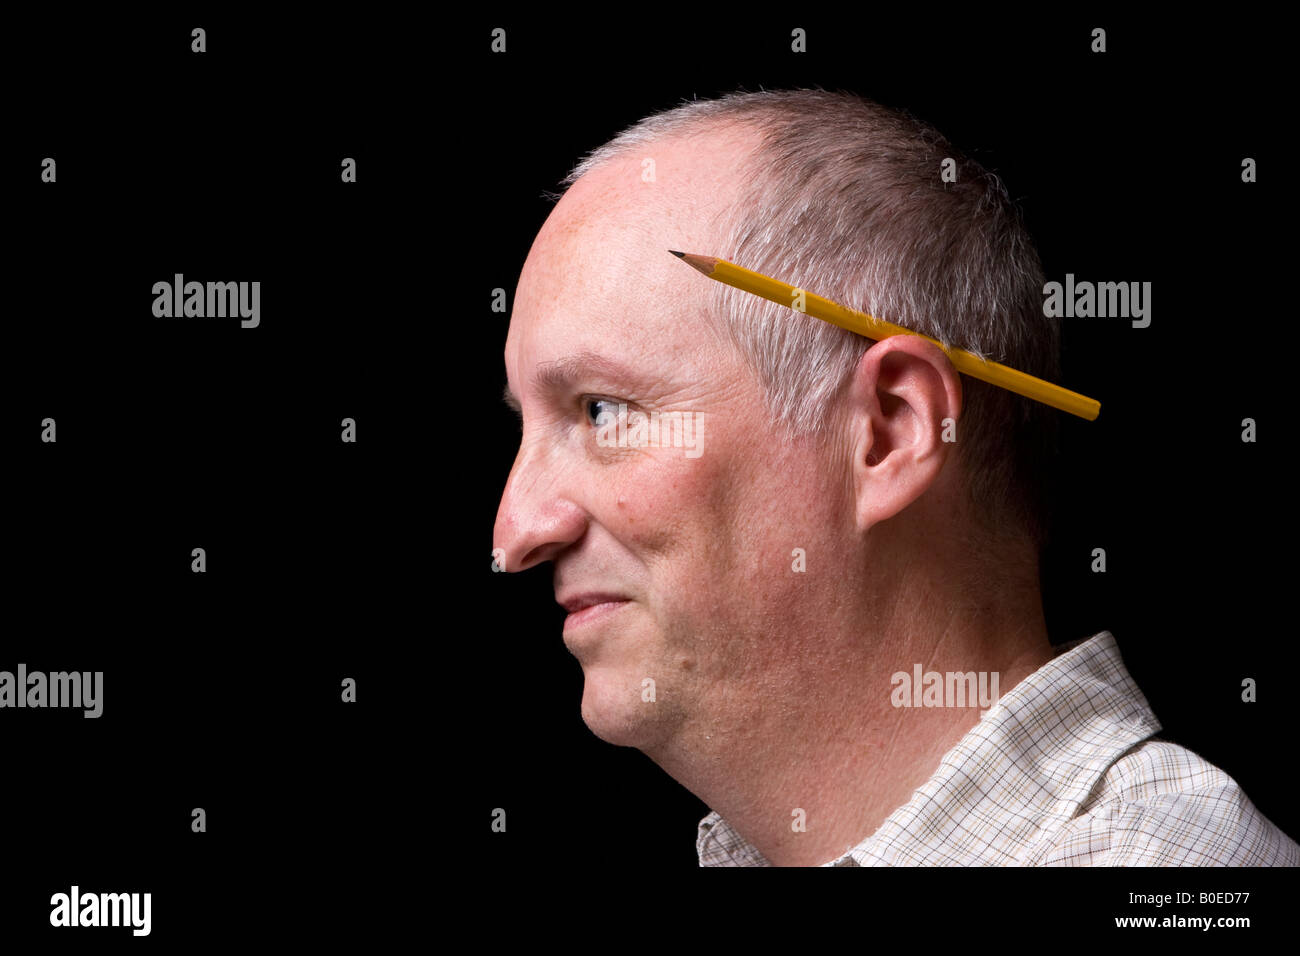 A mna with a pencil behind his ear, UK. - Stock Image